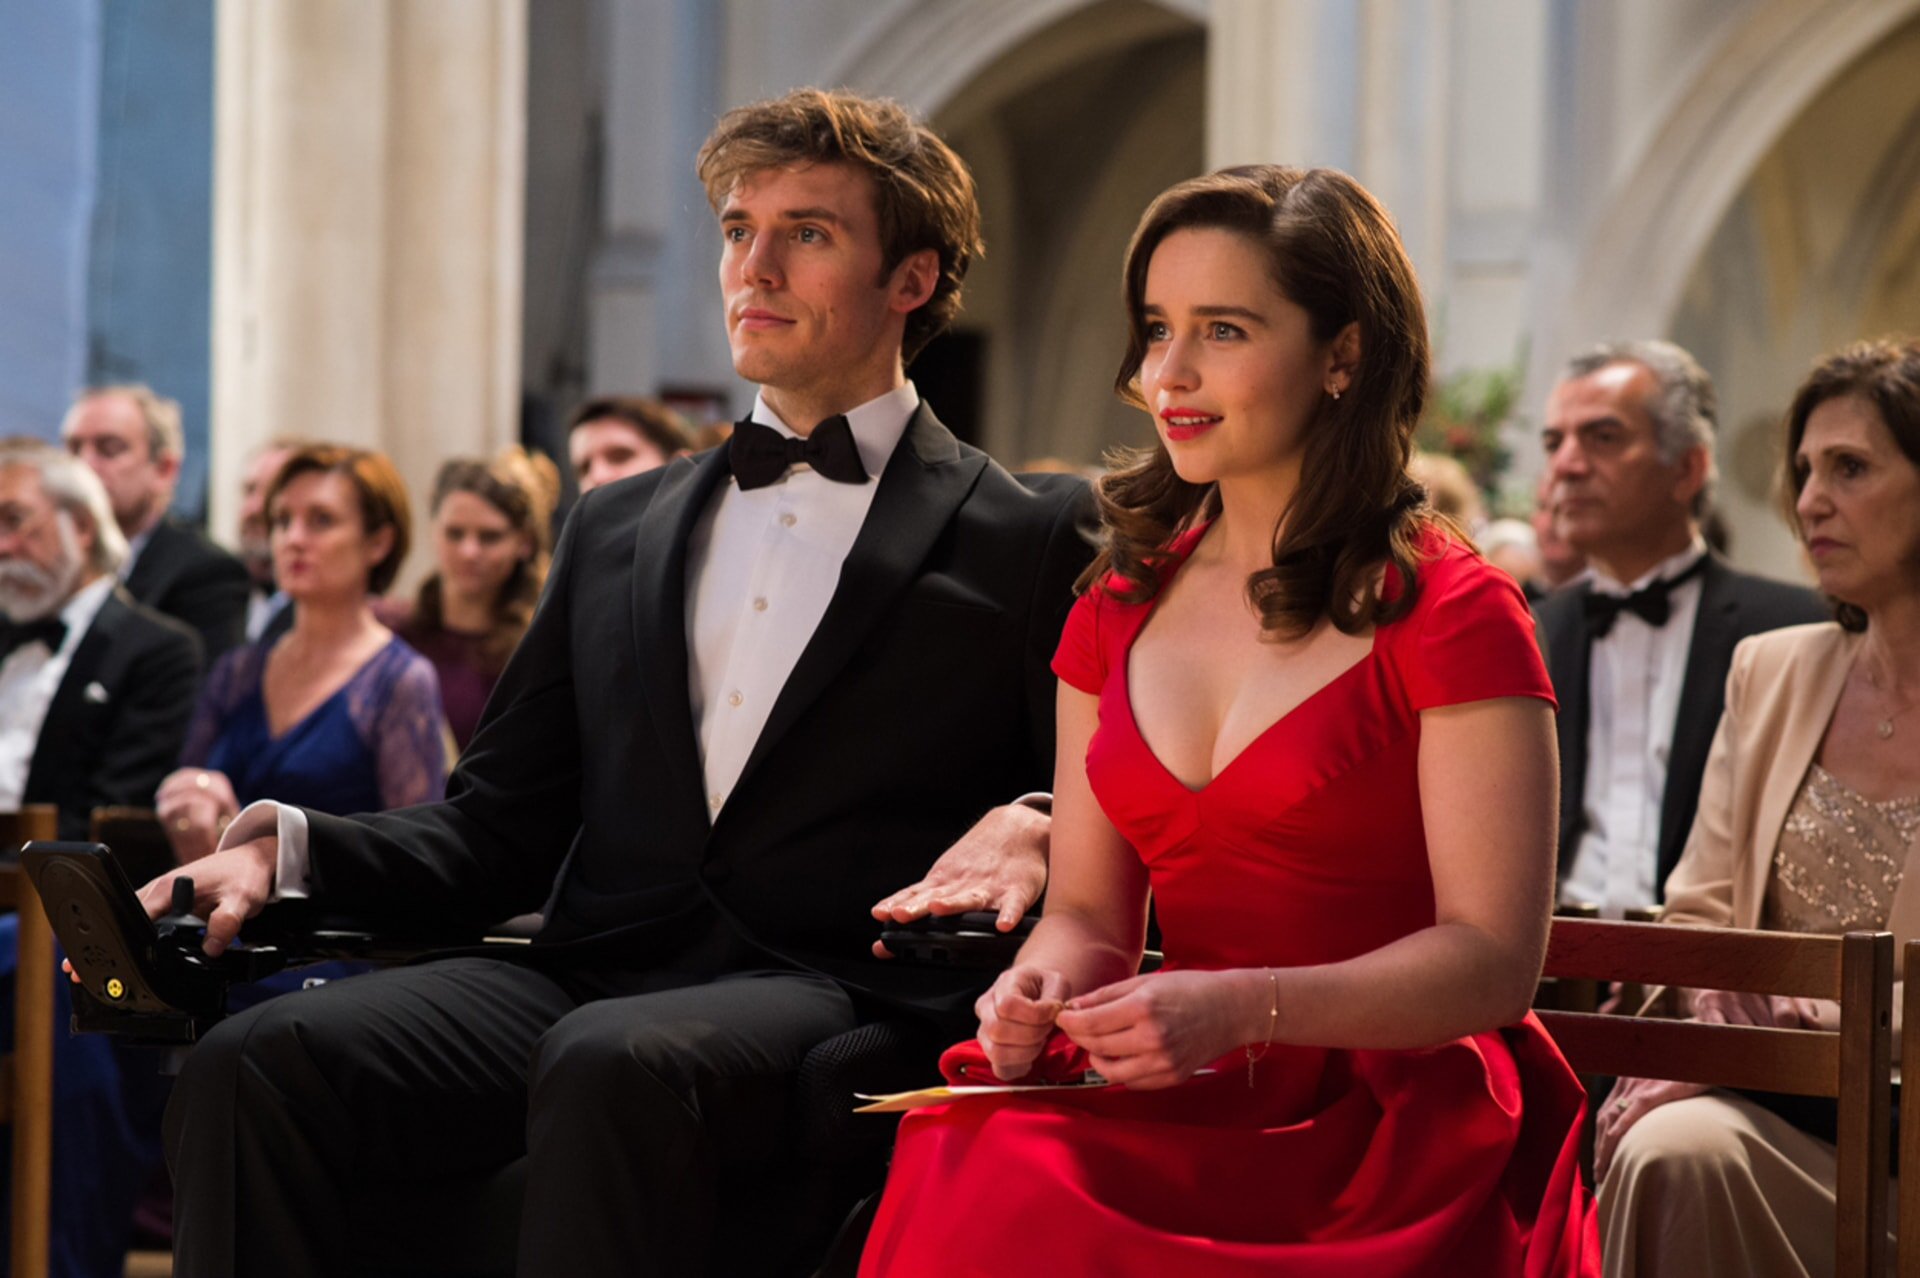 """SAM CLAFLIN as Will Traynor and EMILIA CLARKE as Louisa """"Lou"""" Clark in New Line Cinema's and Metro-Goldwyn-Mayer Pictures' romantic drama """"ME BEFORE YOU,"""" a Warner Bros. Pictures and Metro-Goldwyn-Mayer Pictures release."""